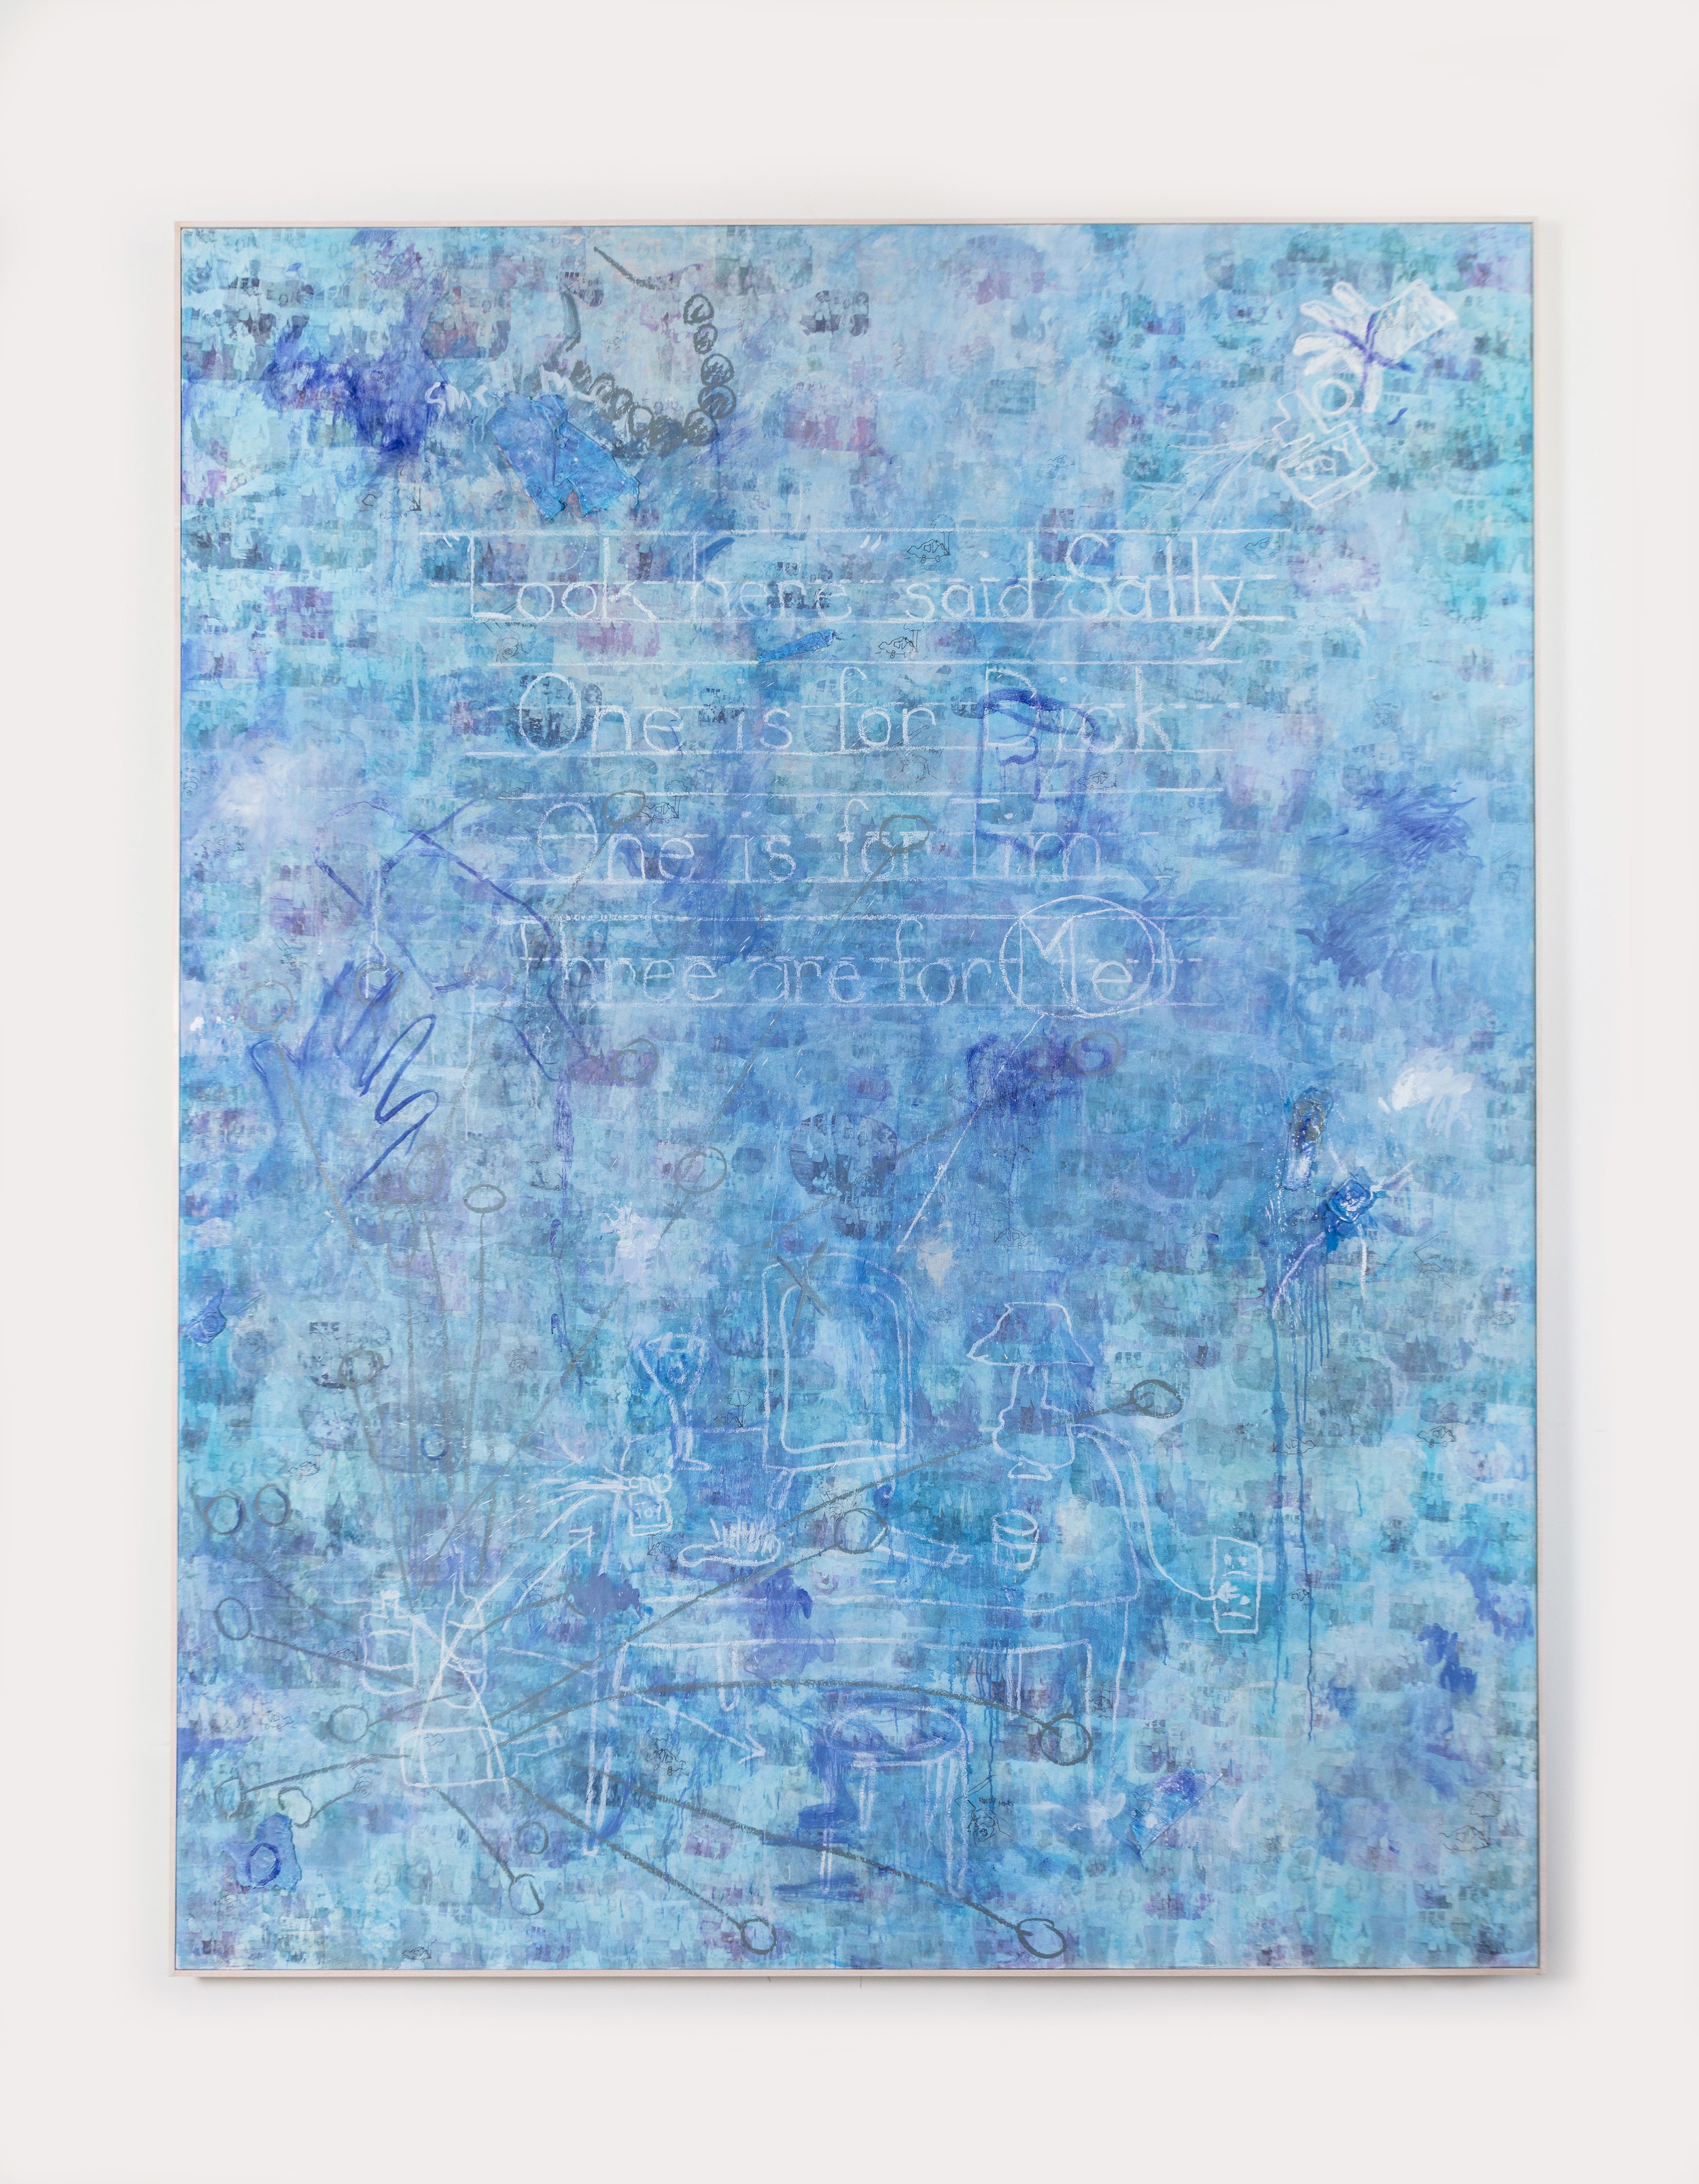 """Blue Valium , 2018  Mixed media on canvas  108 x 96 x 2 inches  The clouded surface of  Blue Valium  is interspersed with a cloudy family photograph that repeats across the canvas. Buried under layers of paint, pastel, and collaged fabrics, the subjects' identities become unrecognizable - the family becomes a token for the stereotypical unit. The bottom half of the canvas makes way for a frantic drawing in pastel, a cluttered vanity becomes visible. A bottle of perfume labeled """"Joy"""", an empty martini glass, and a bottle of pills foreshadow a dark undertone to the smiling familial photograph."""